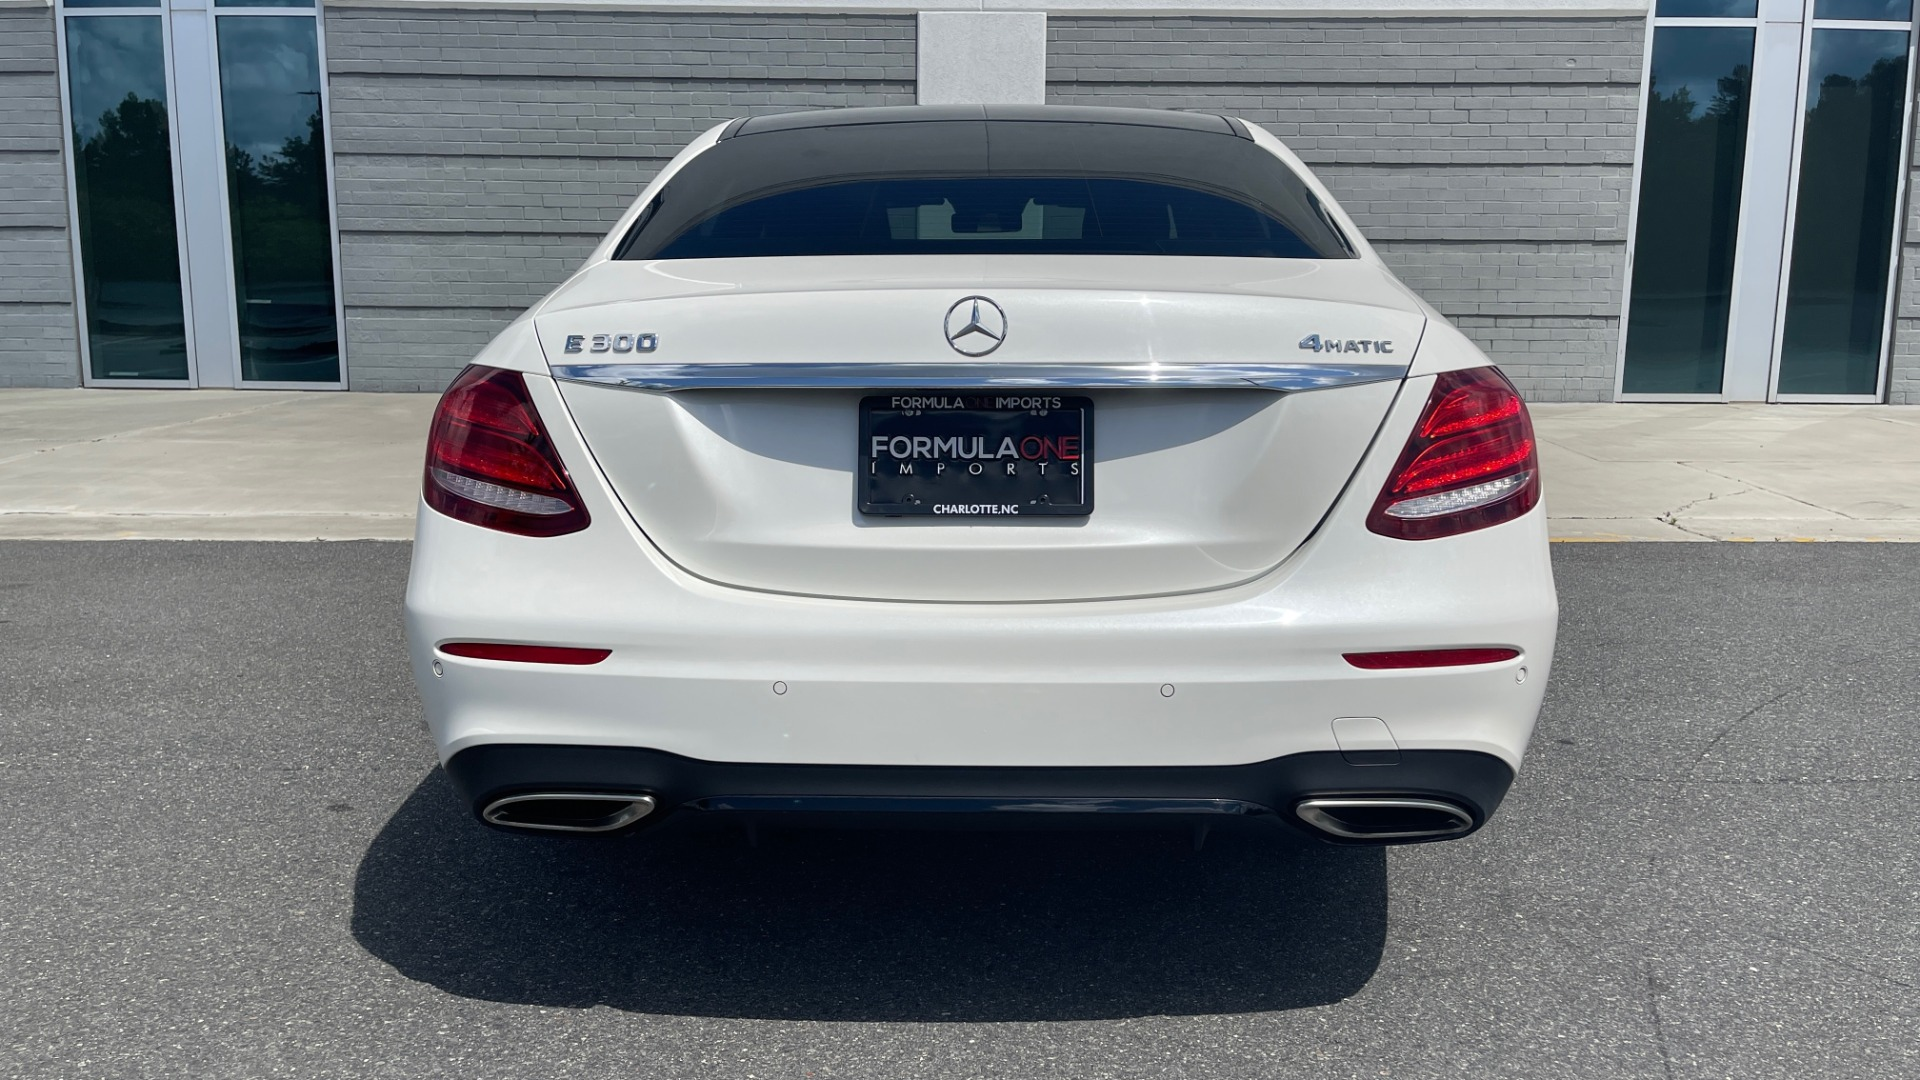 Used 2018 Mercedes-Benz E-CLASS E 300 PREMIUM / NIGHT PKG / PANO-ROOF / BURMESTER / REARVIEW for sale $42,399 at Formula Imports in Charlotte NC 28227 28